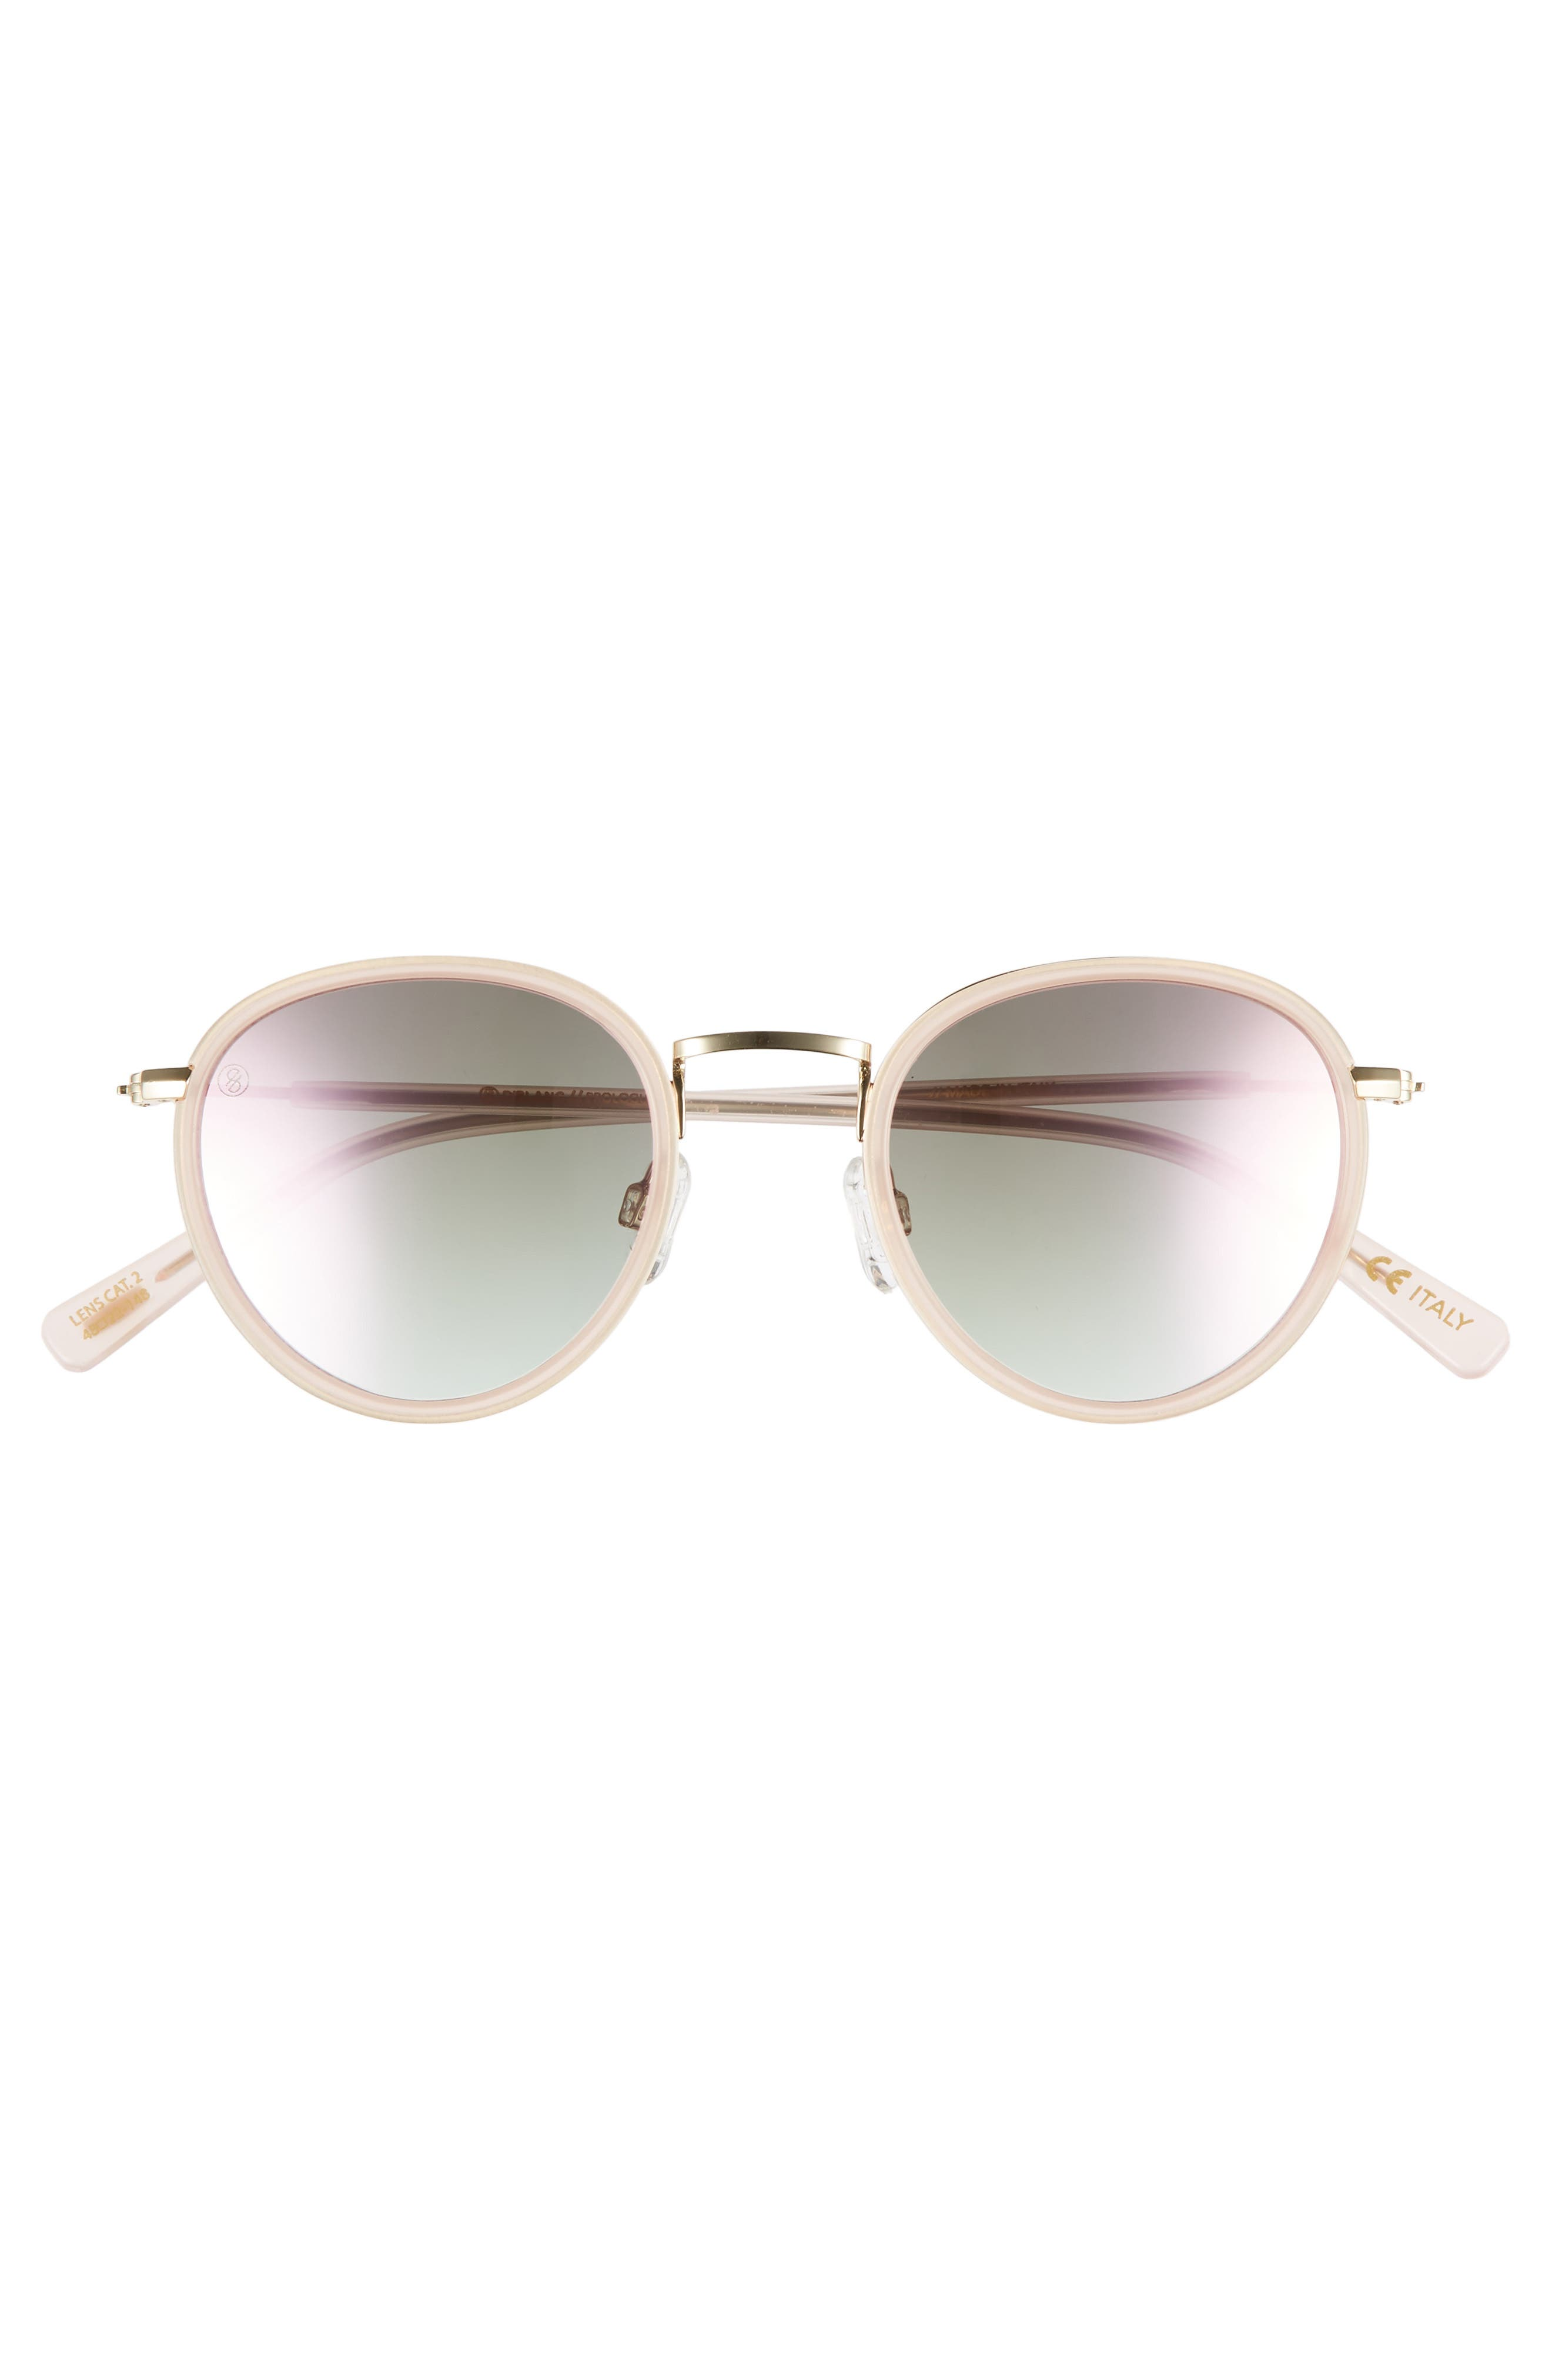 D'BLANC Prologue 48mm Round Sunglasses,                             Alternate thumbnail 3, color,                             Blush/ Rose Flash